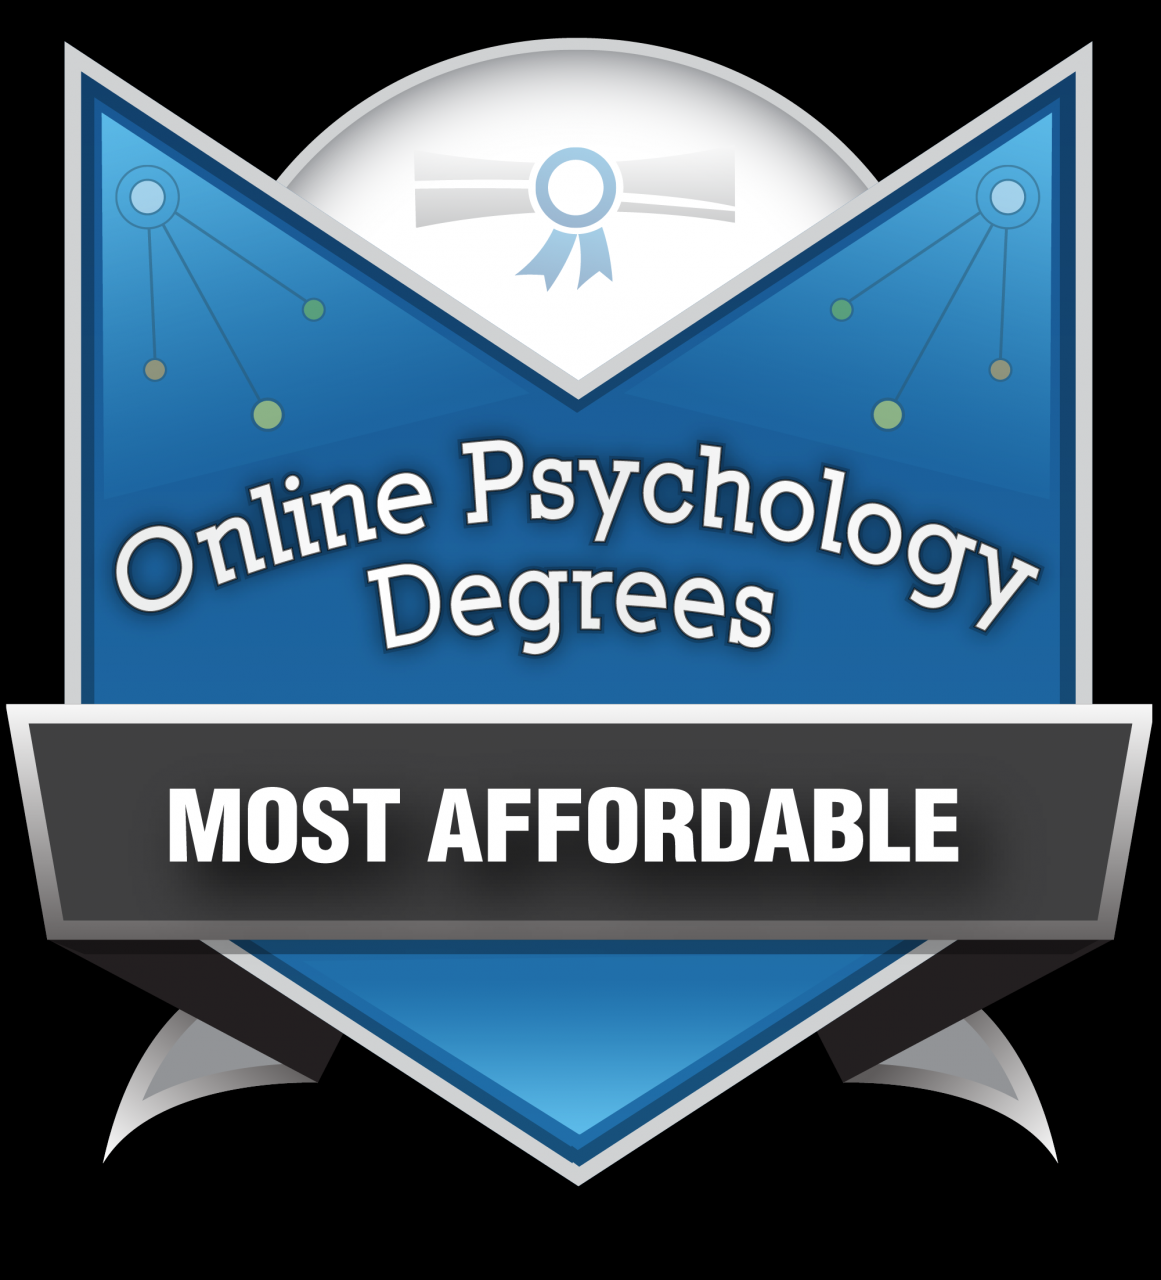 30 Most Affordable Master's in Counseling Degree Programs 2019 - Online  Psychology Degrees